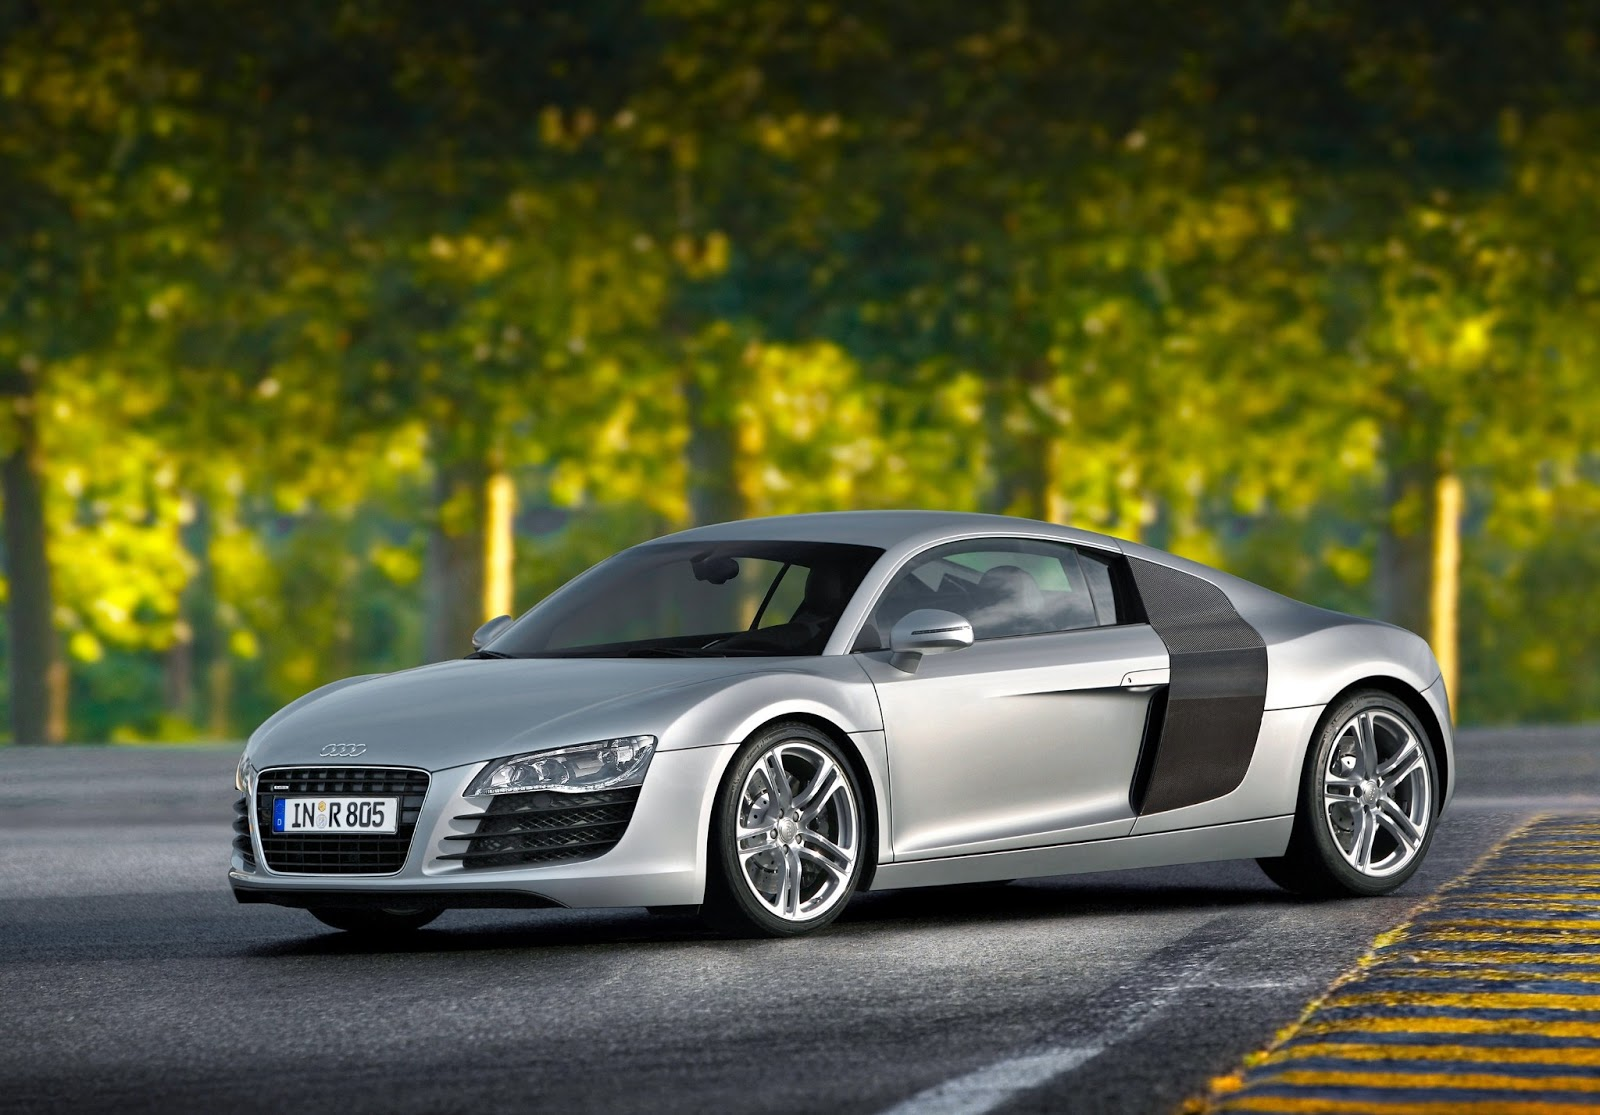 2006 Audi R8 2008 Wallpapers Interiors And Exteriors Pictures Infinity Cars 2 U